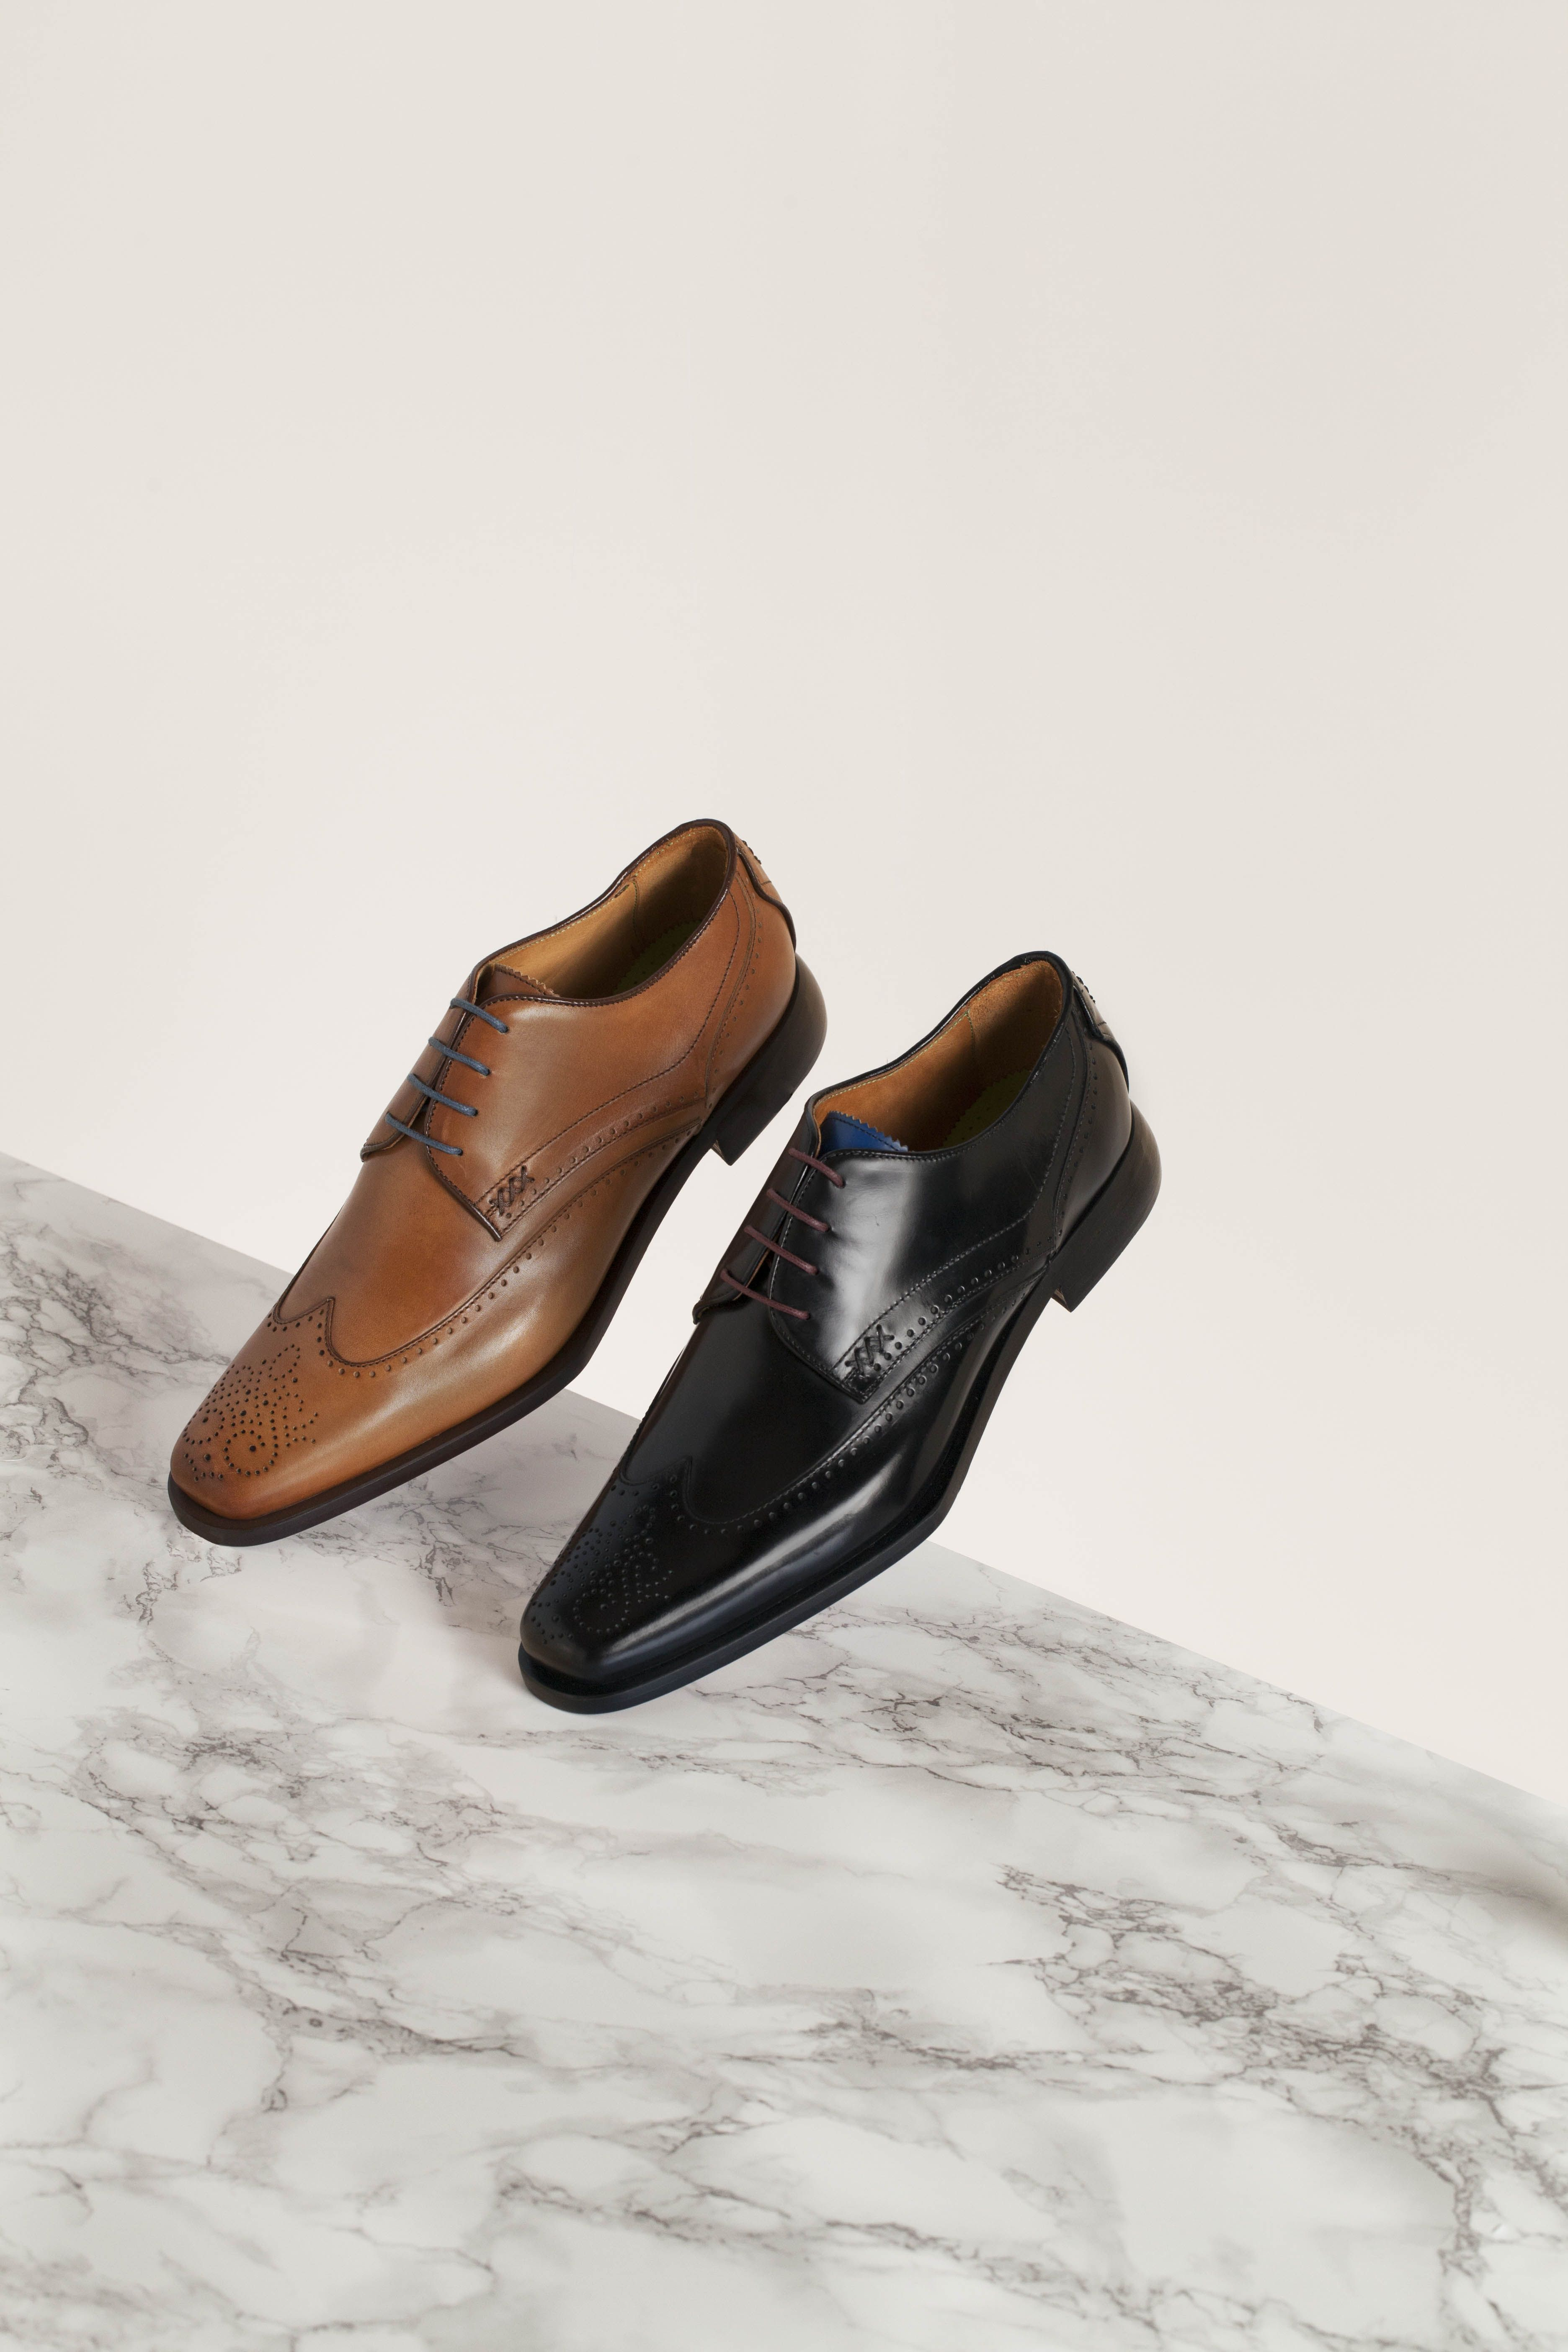 8860baf3cdd Sini formal shoes. Men's smart shoes | Escape The Ordinary: AW16 in ...